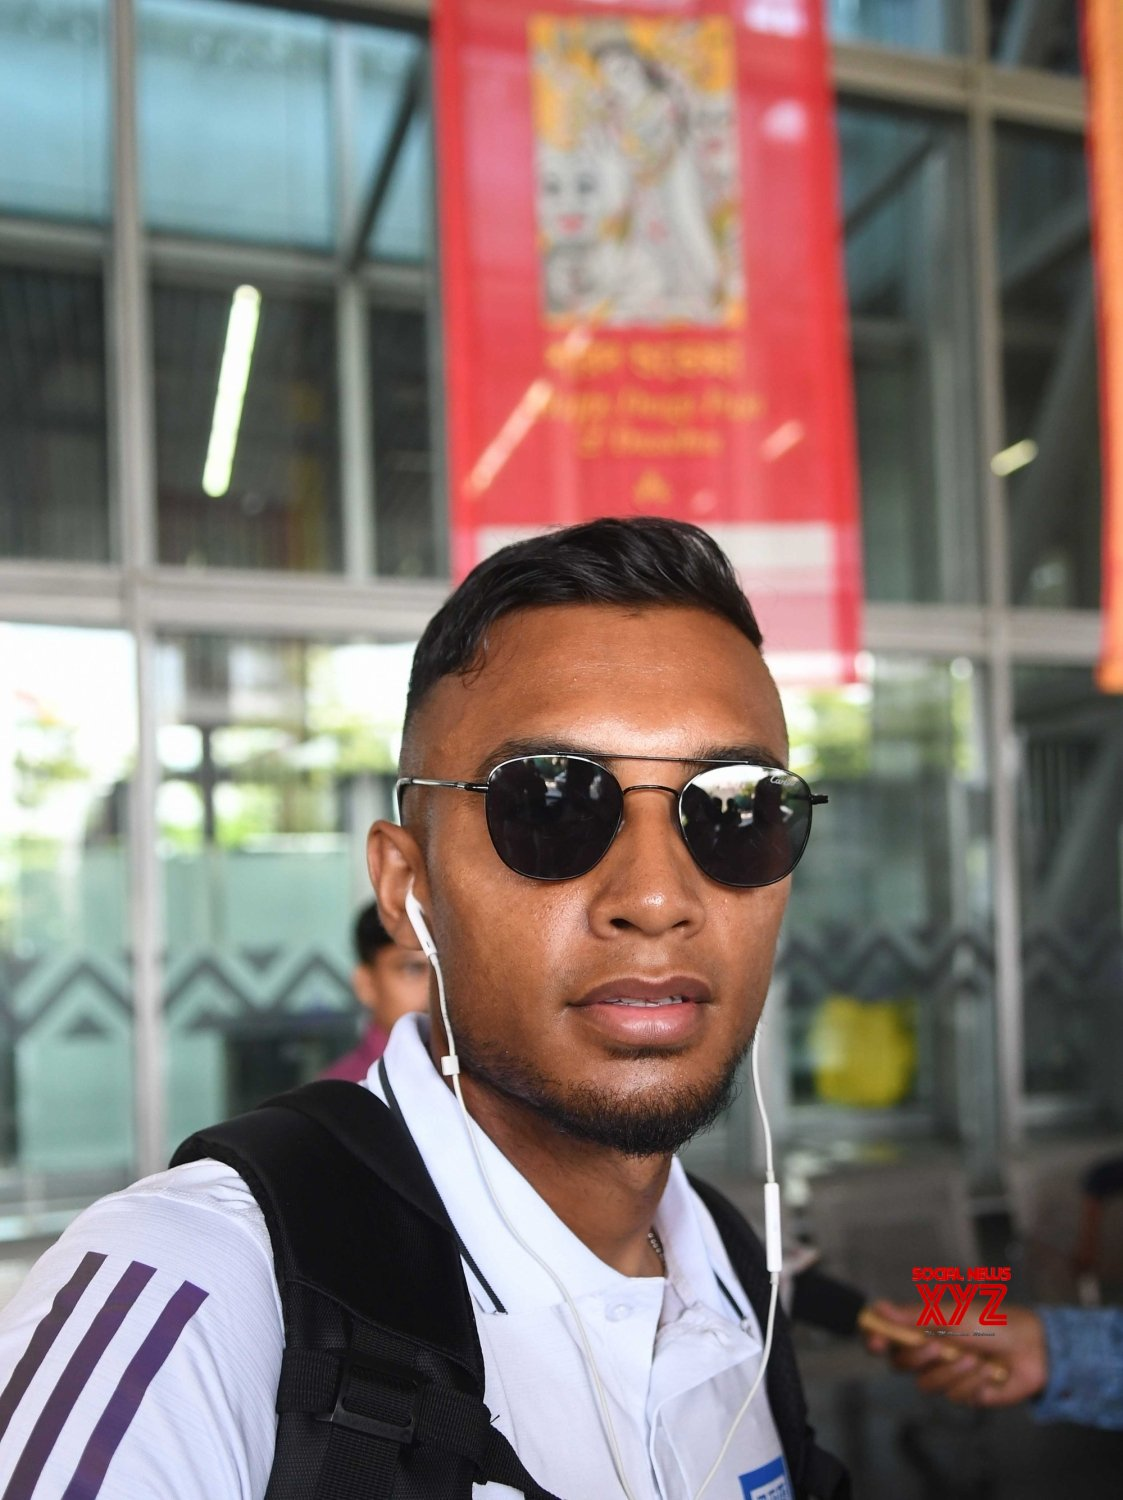 Kolkata: Bangladesh Football team arrives in India #Gallery